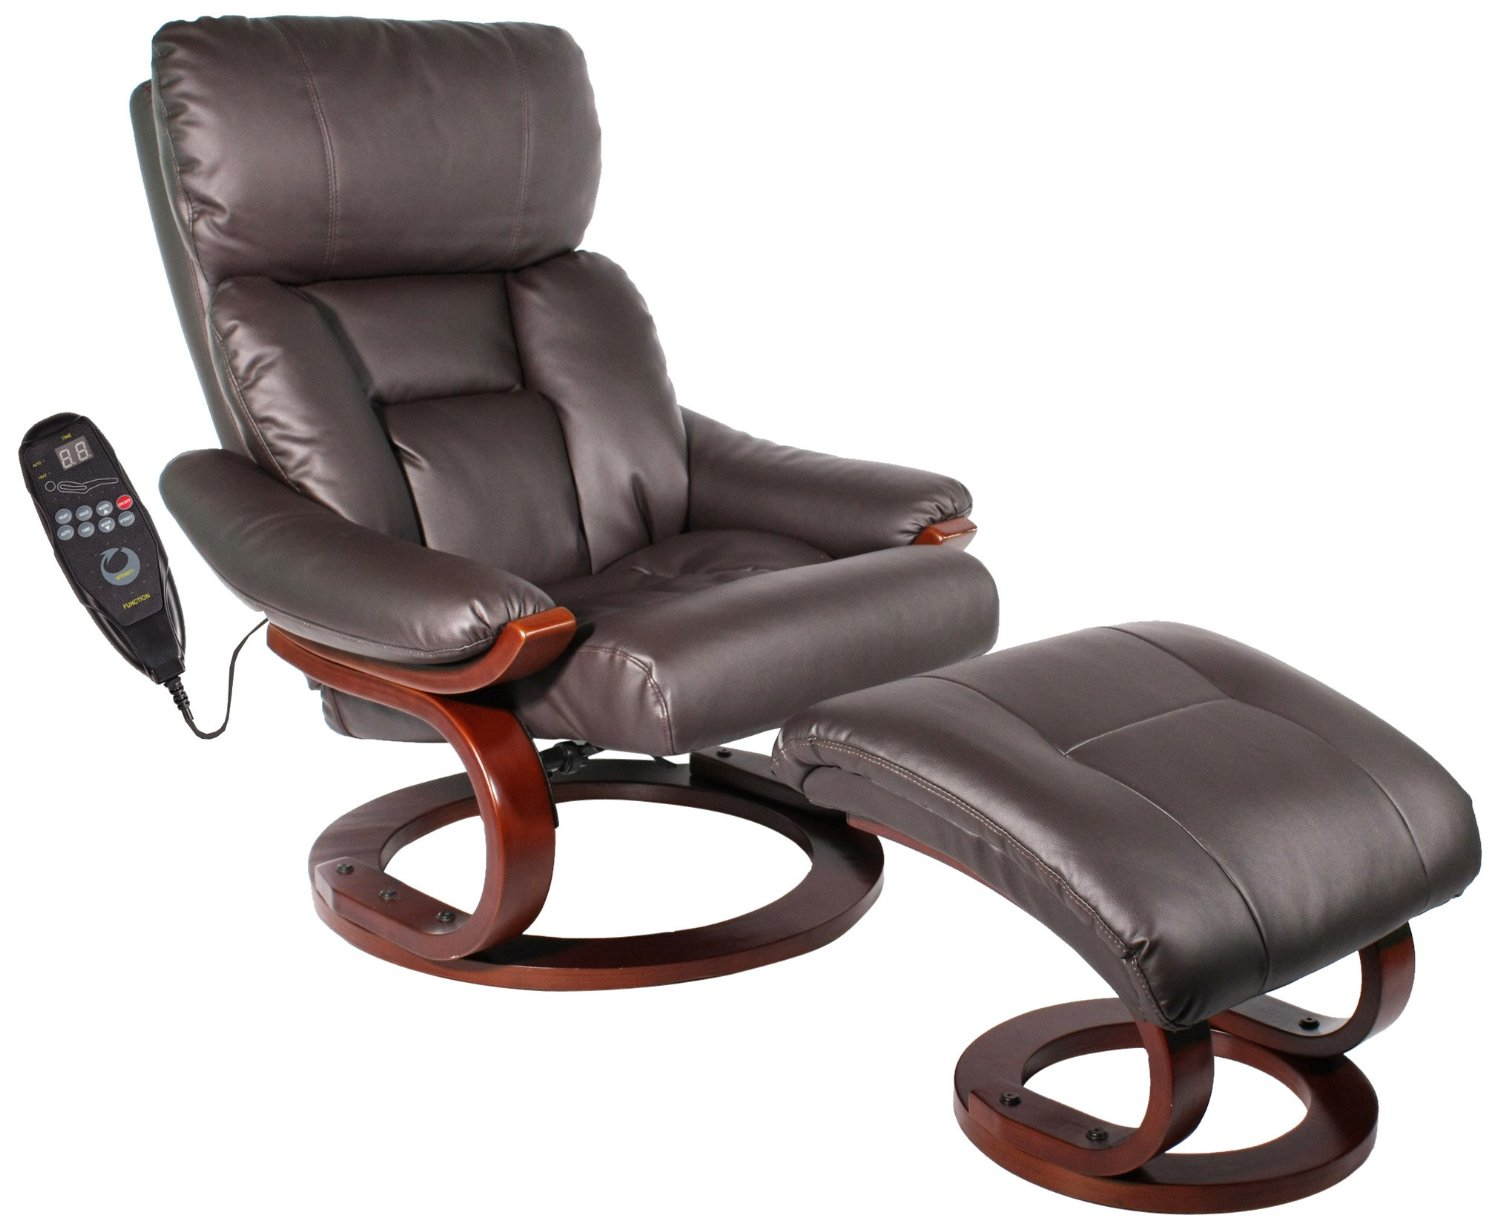 Message Chairs Comfort Vantin Deluxe Massaging Recliner And Ottoman